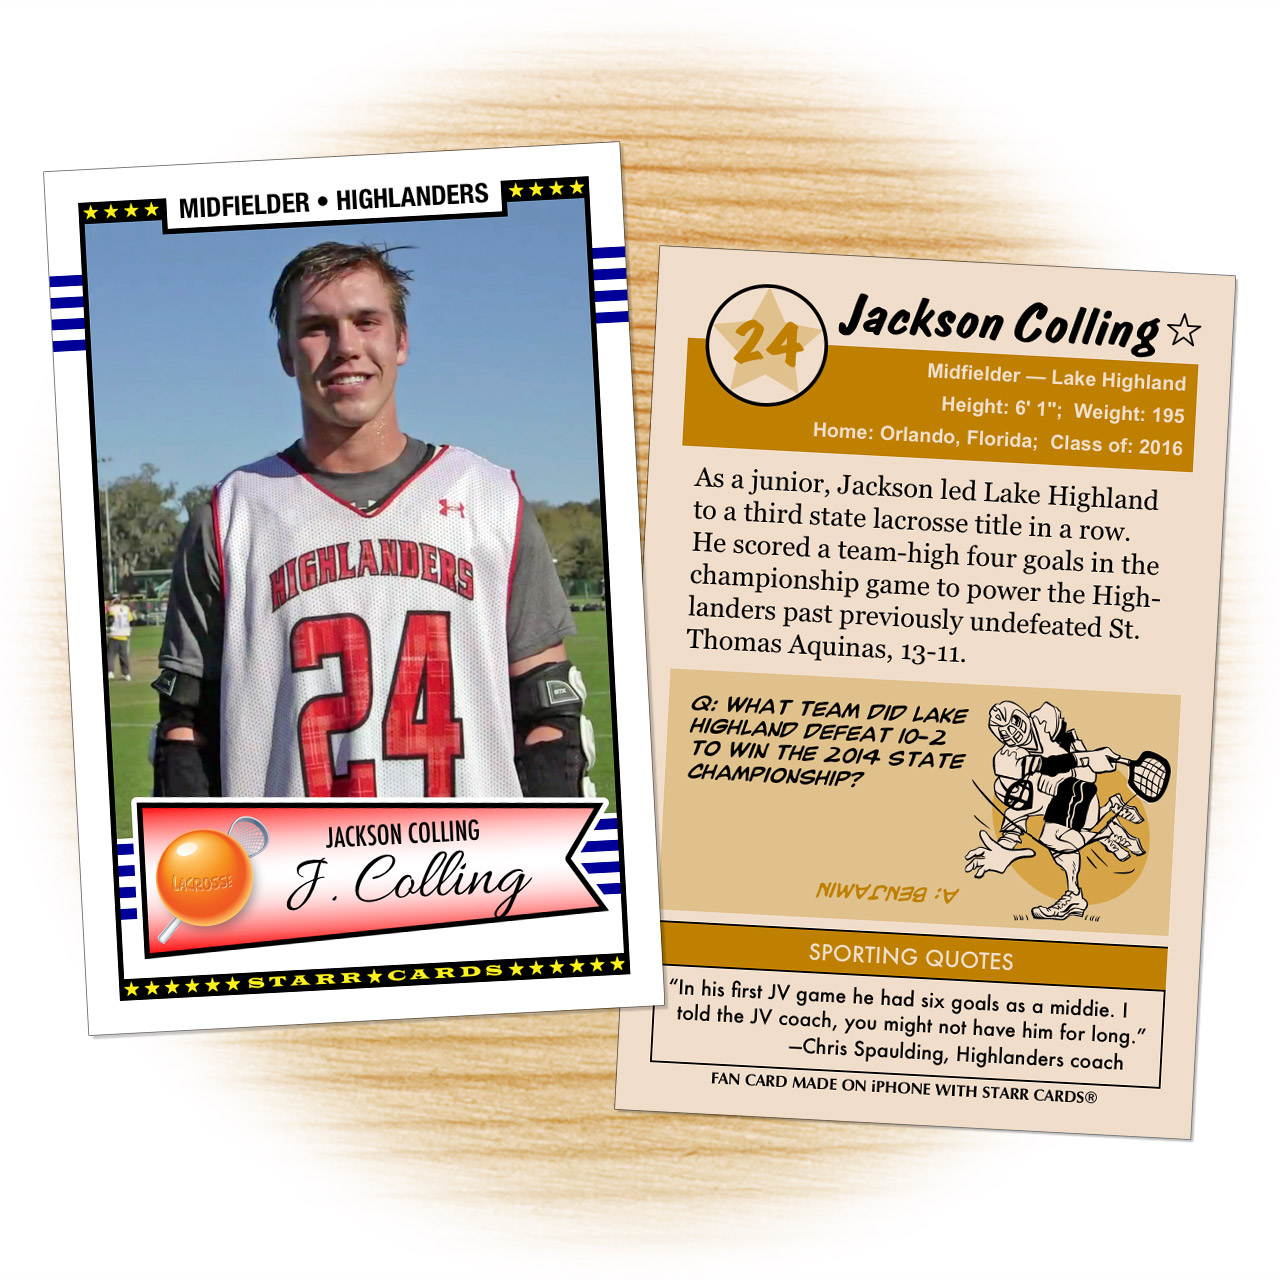 Fan card of Lake Highland Highlanders lacrosse midfielder Jackson Colling